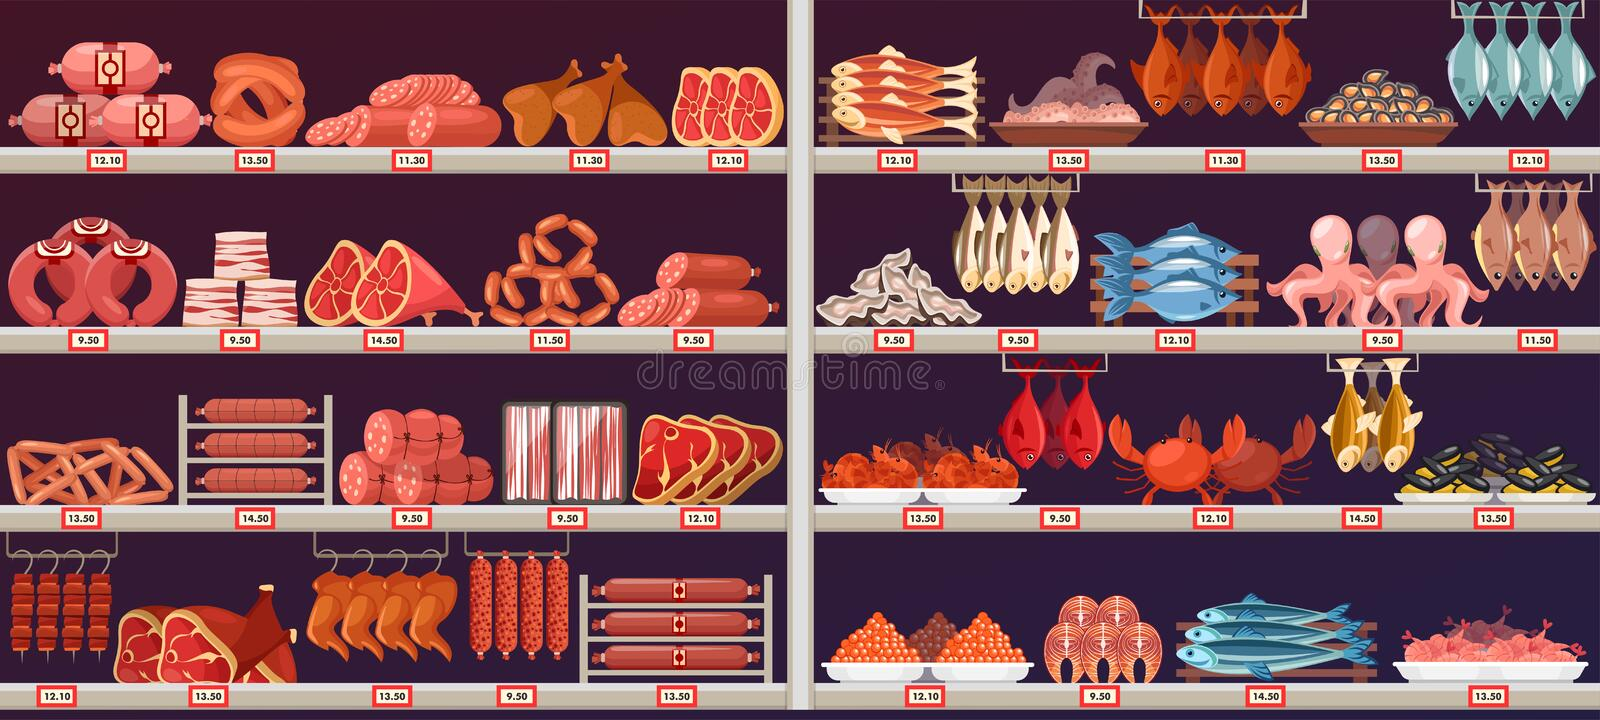 Meat and Fish products at shop or store stall vector illustration